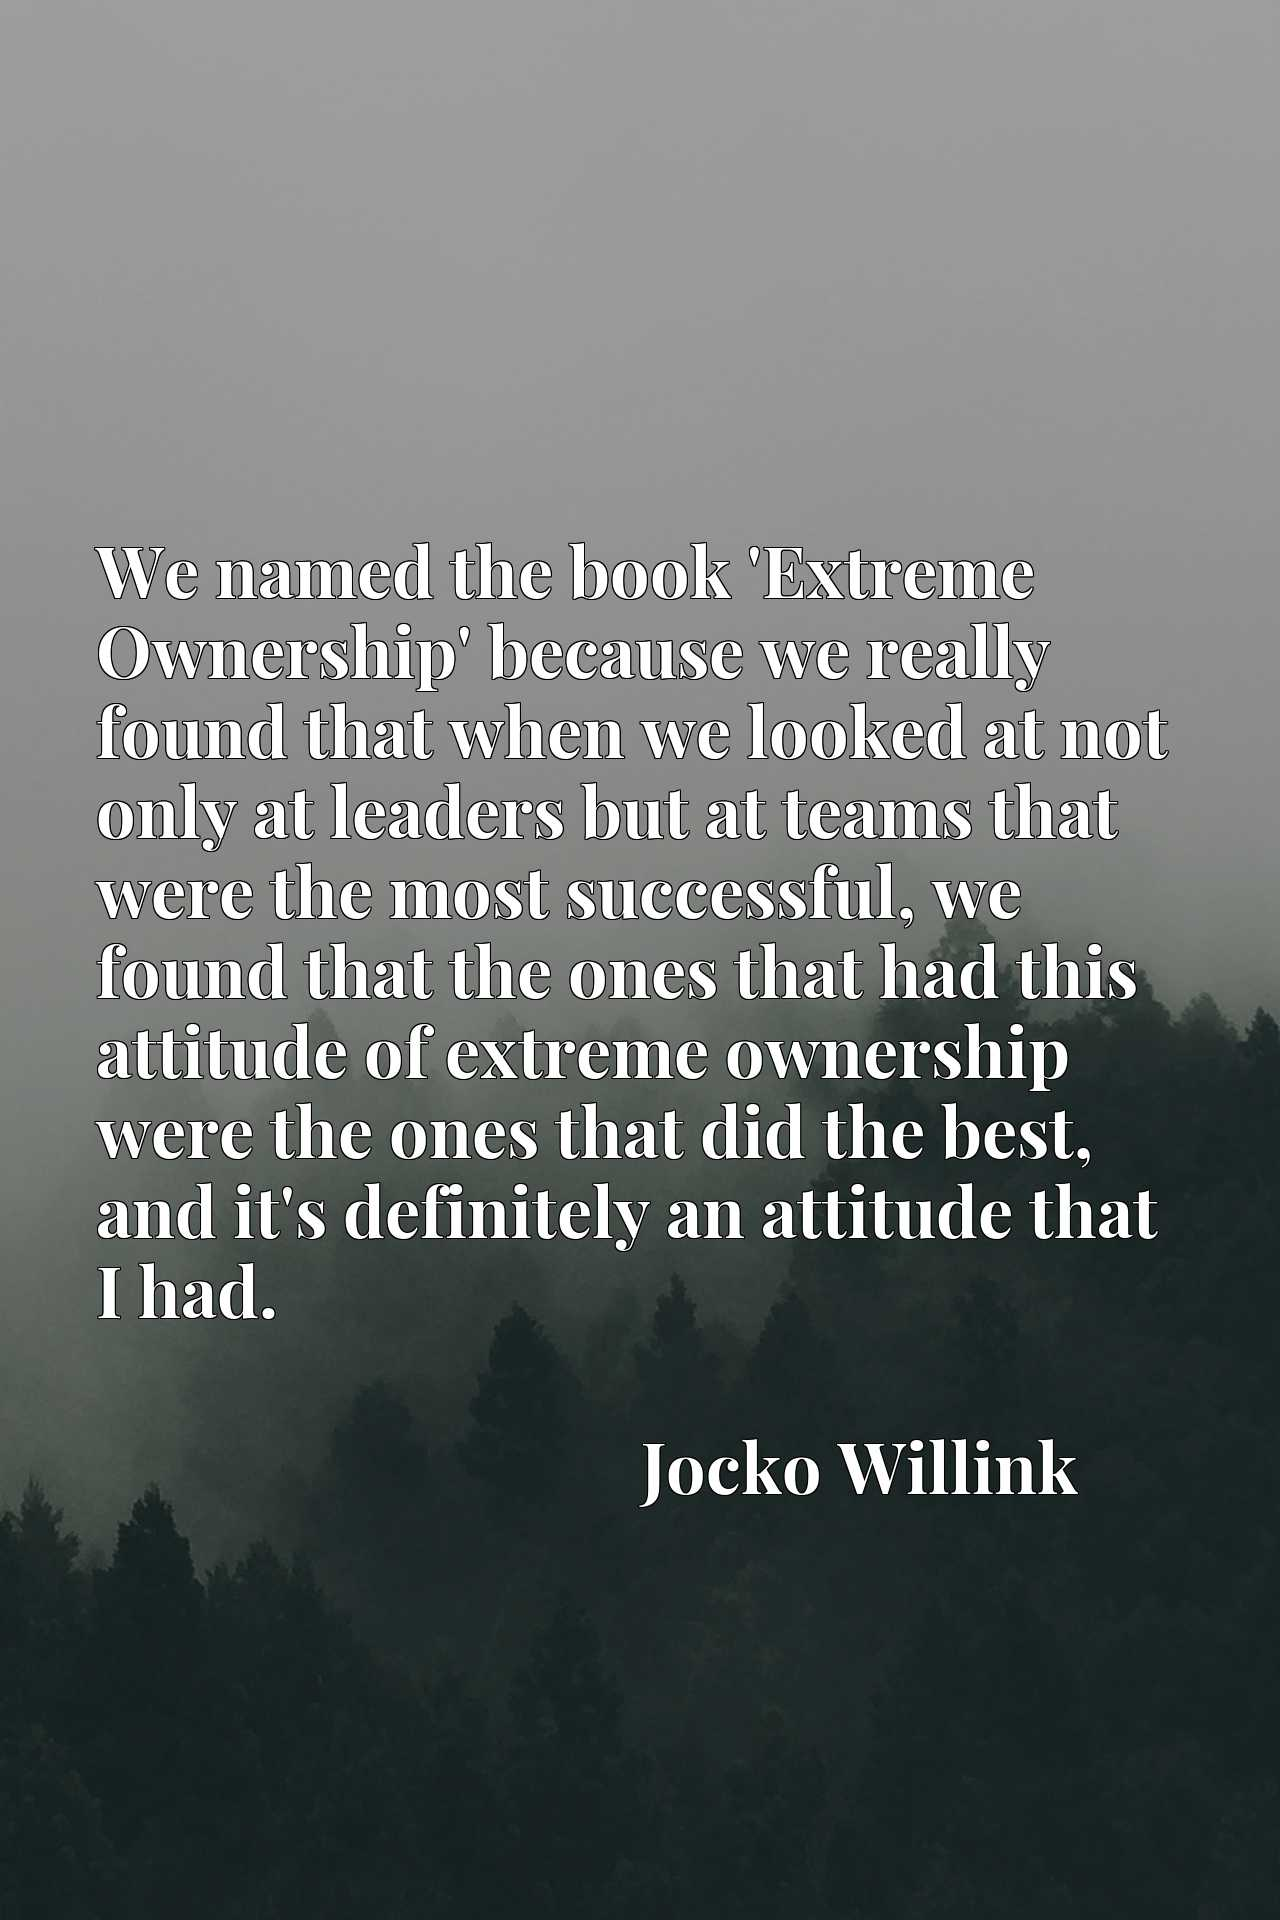 We named the book 'Extreme Ownership' because we really found that when we looked at not only at leaders but at teams that were the most successful, we found that the ones that had this attitude of extreme ownership were the ones that did the best, and it's definitely an attitude that I had.